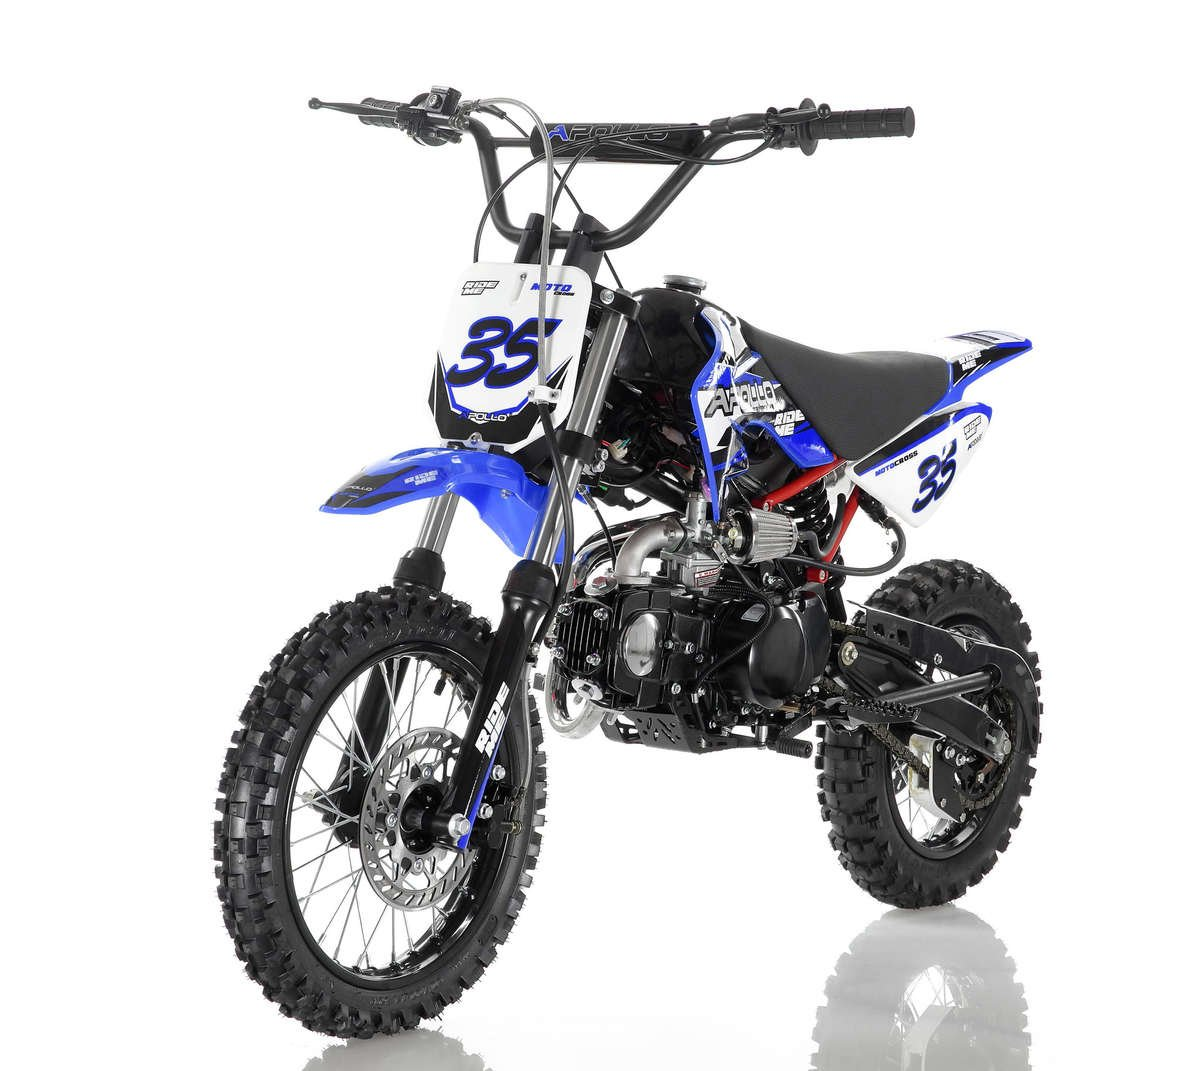 Apollo 35 Dirt Bike 125cc Blue